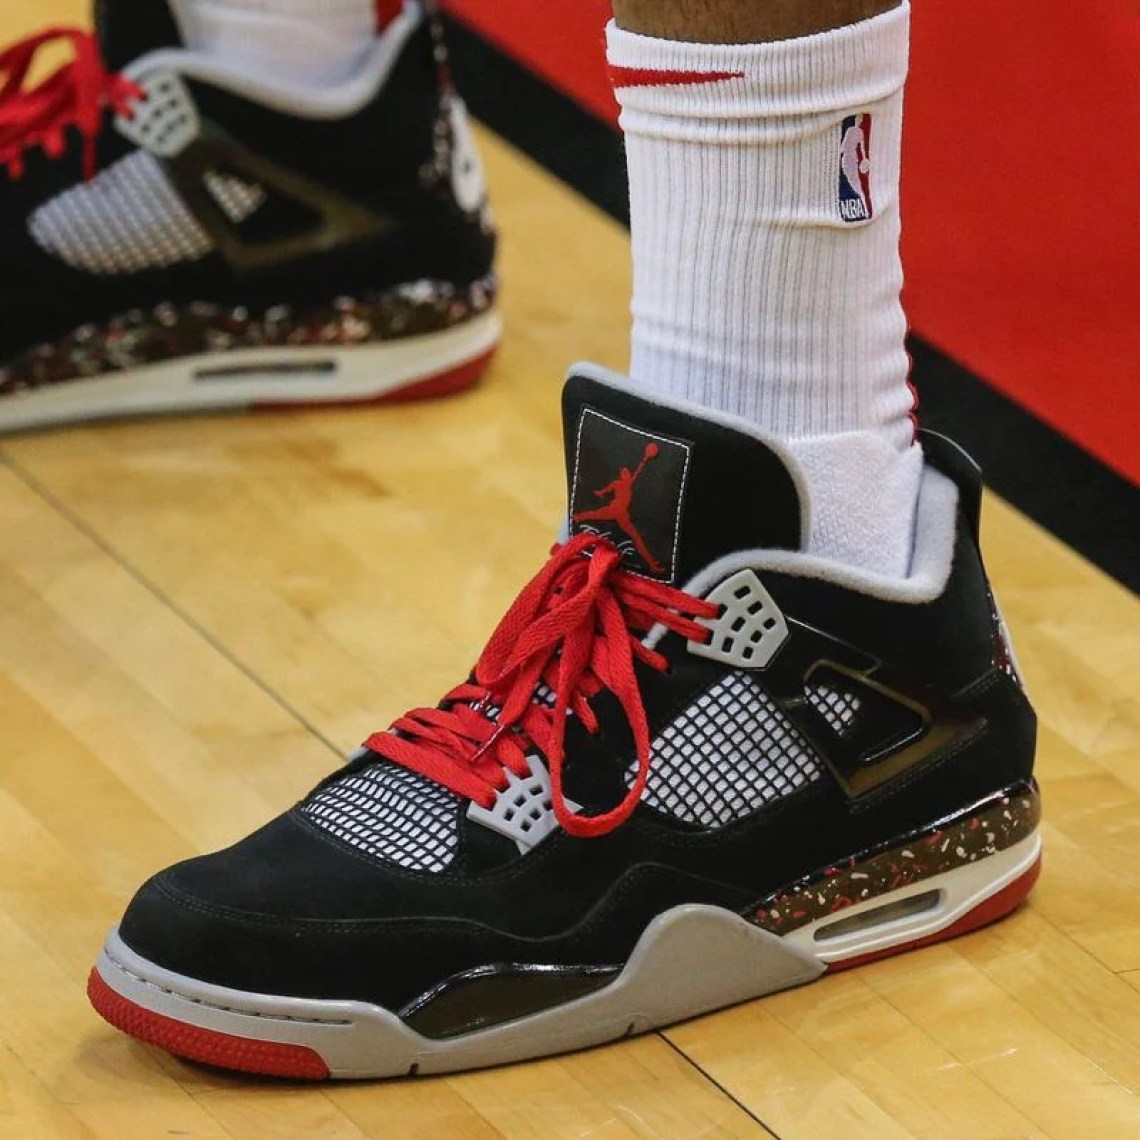 4cef3af5266c The Top 10 Kicks On Court From This Week